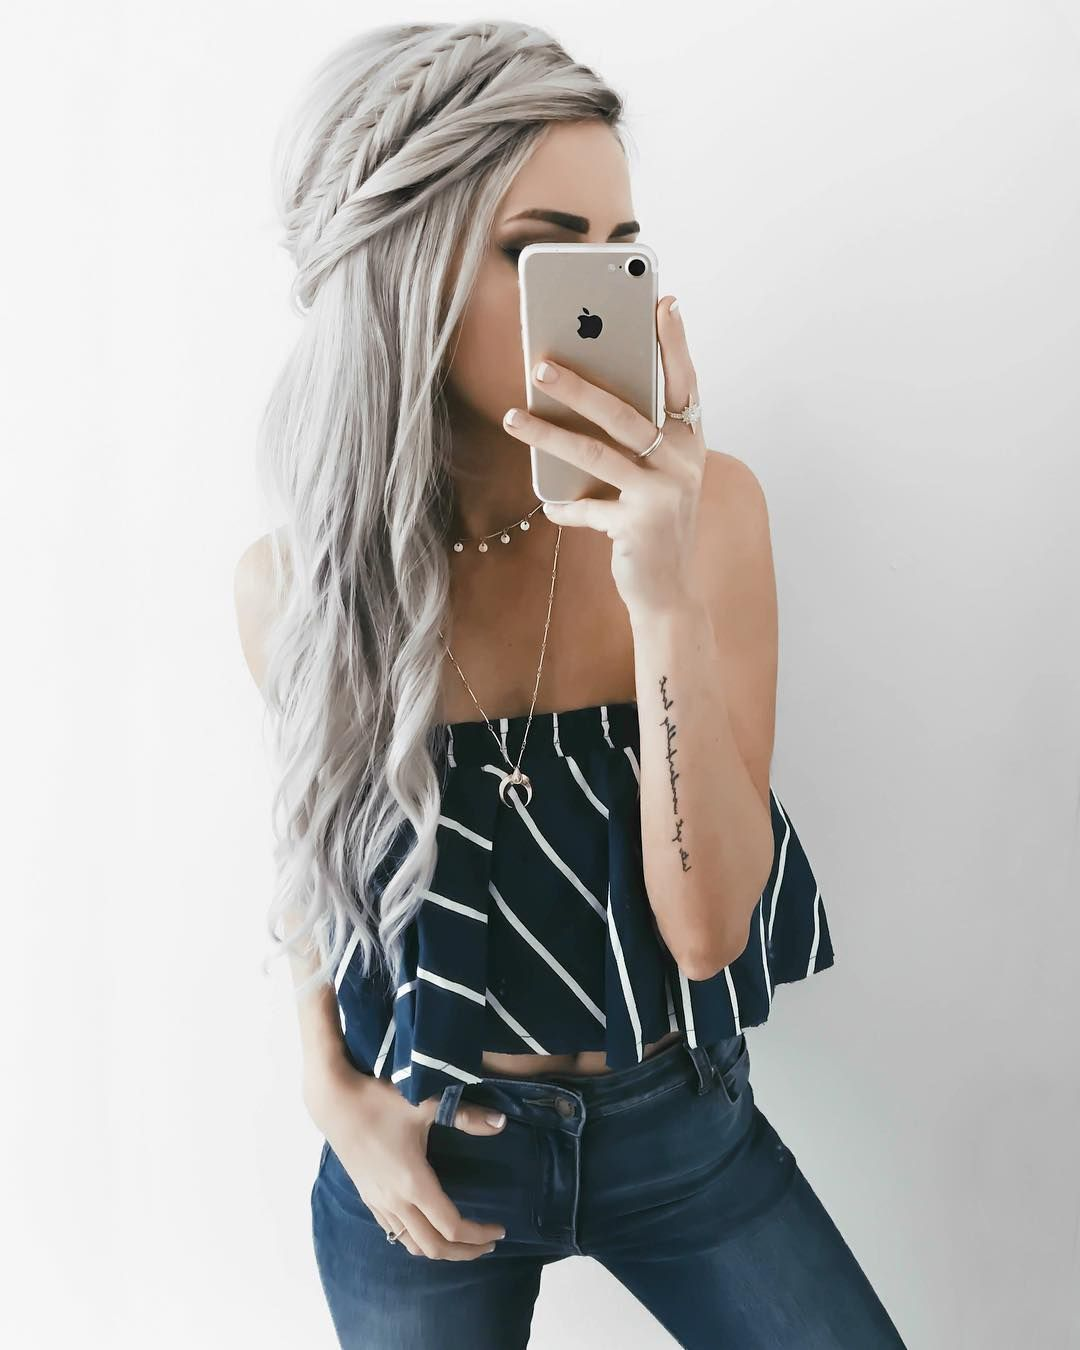 367 3k Followers 990 Following 1 735 Posts See Instagram Photos And Videos From Emilyrosehannon Hair Styles Pinterest Hair Long Hair Styles